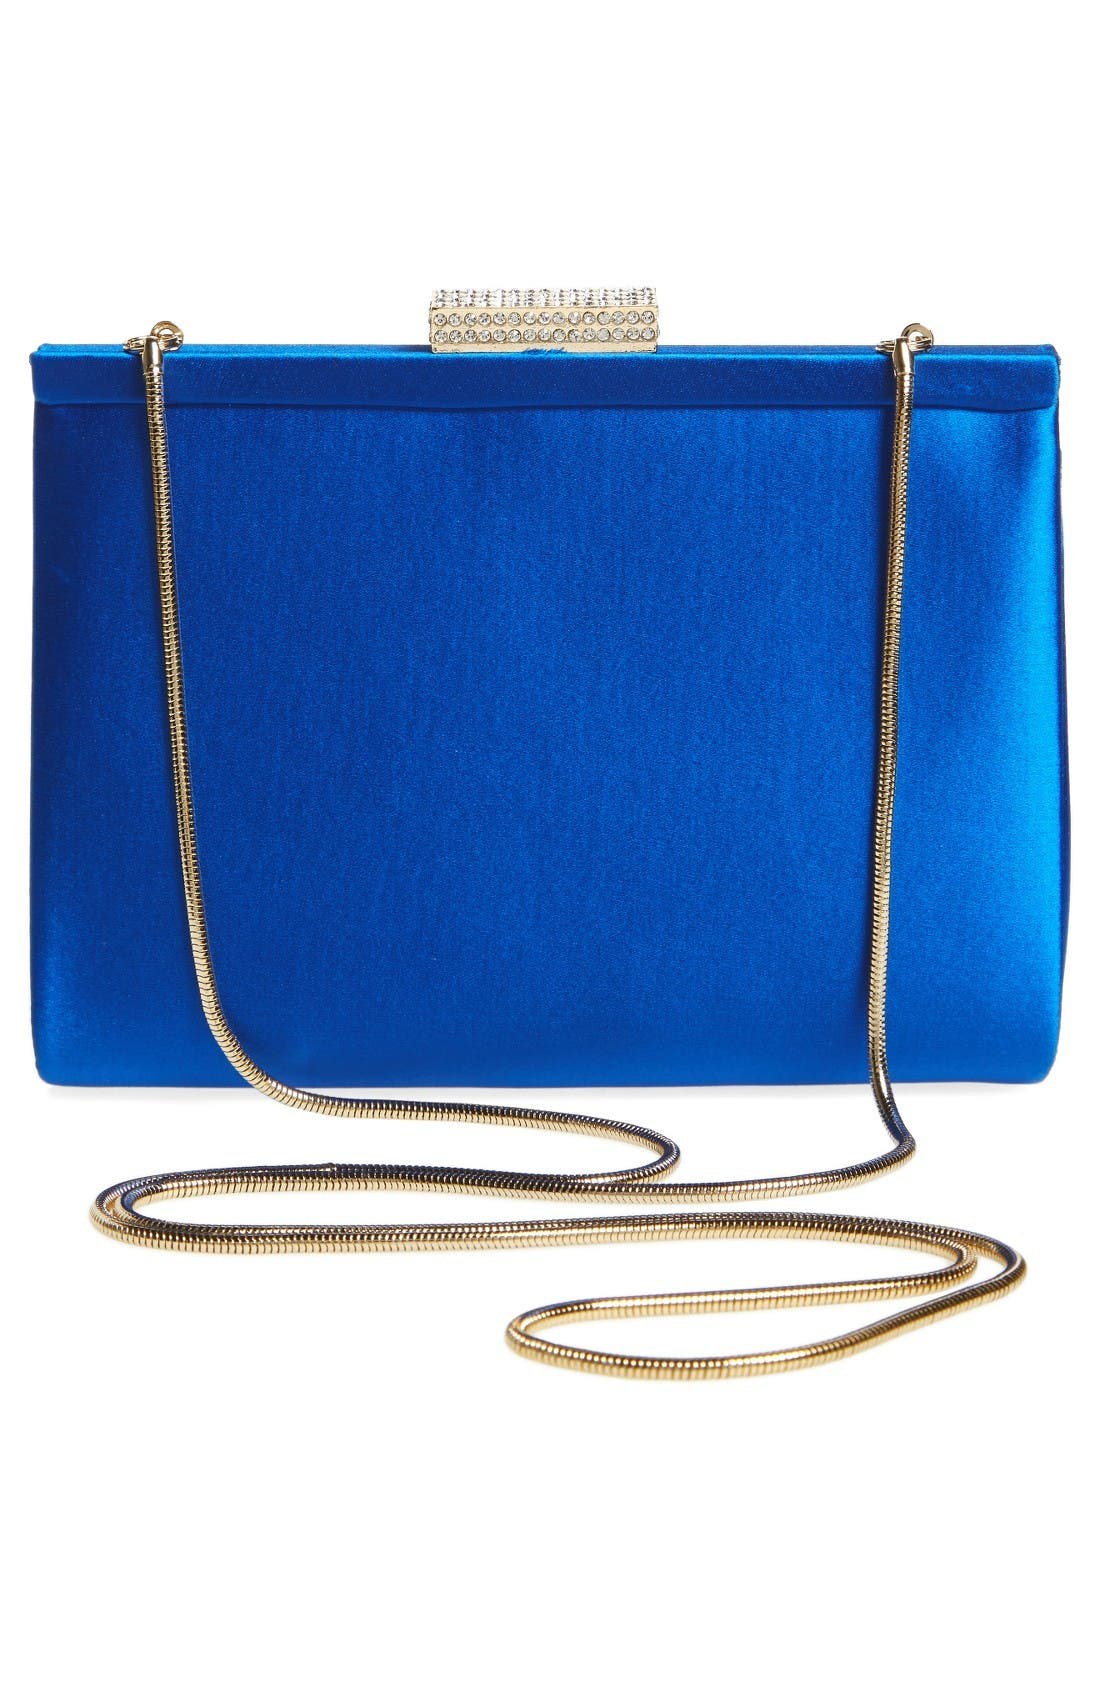 Alternate Image 3  - Badgley Mischka Adele Frame Clutch